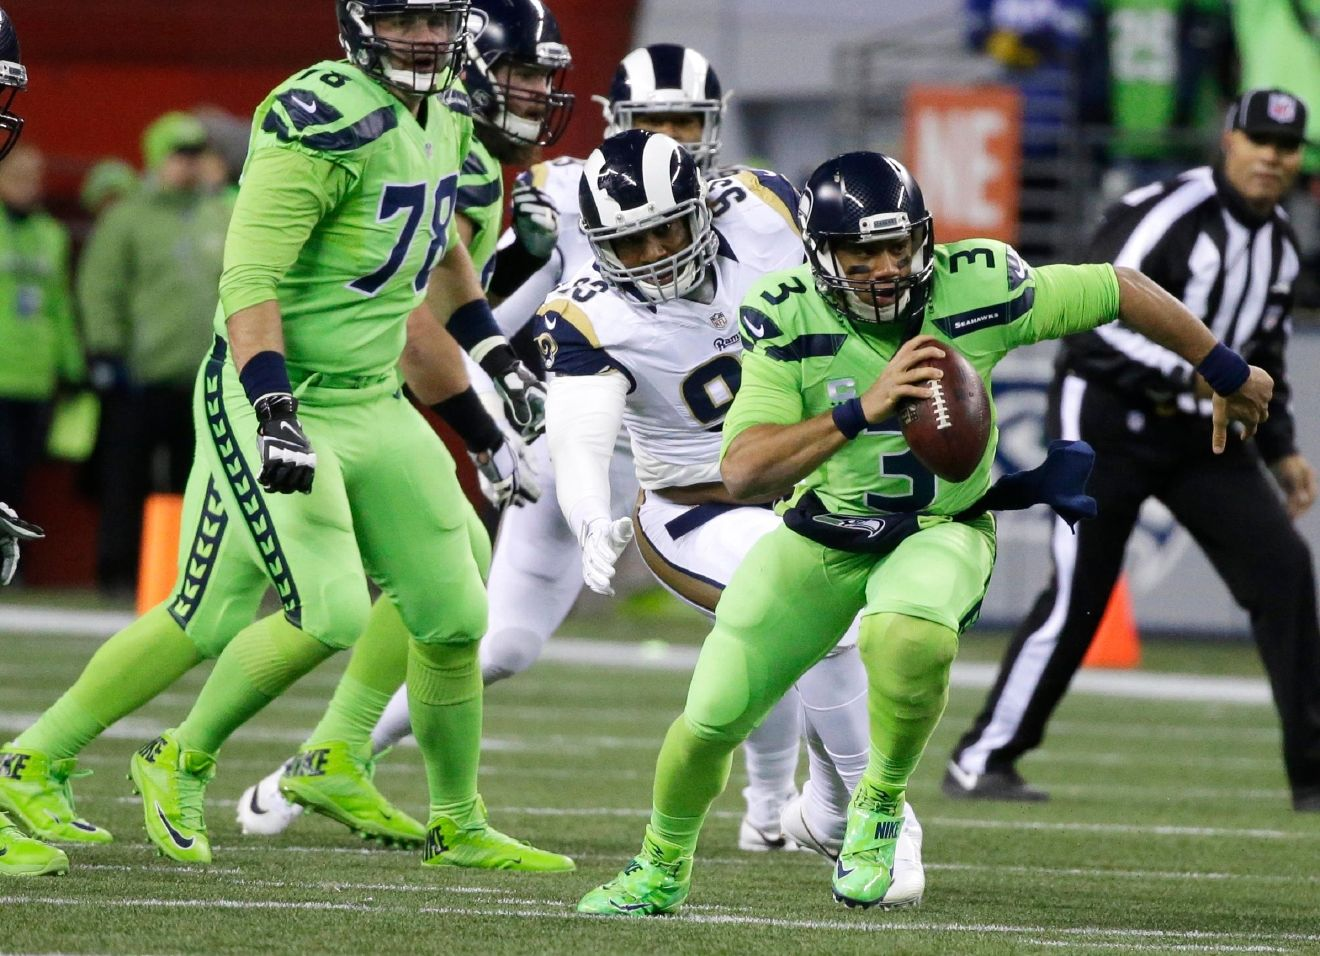 Seattle Seahawks quarterback Russell Wilson (3) scrambles away from Los Angeles Rams defensive end Ethan Westbrooks, center, in the first half of an NFL football game, Thursday, Dec. 15, 2016, in Seattle. (AP Photo/Elaine Thompson)